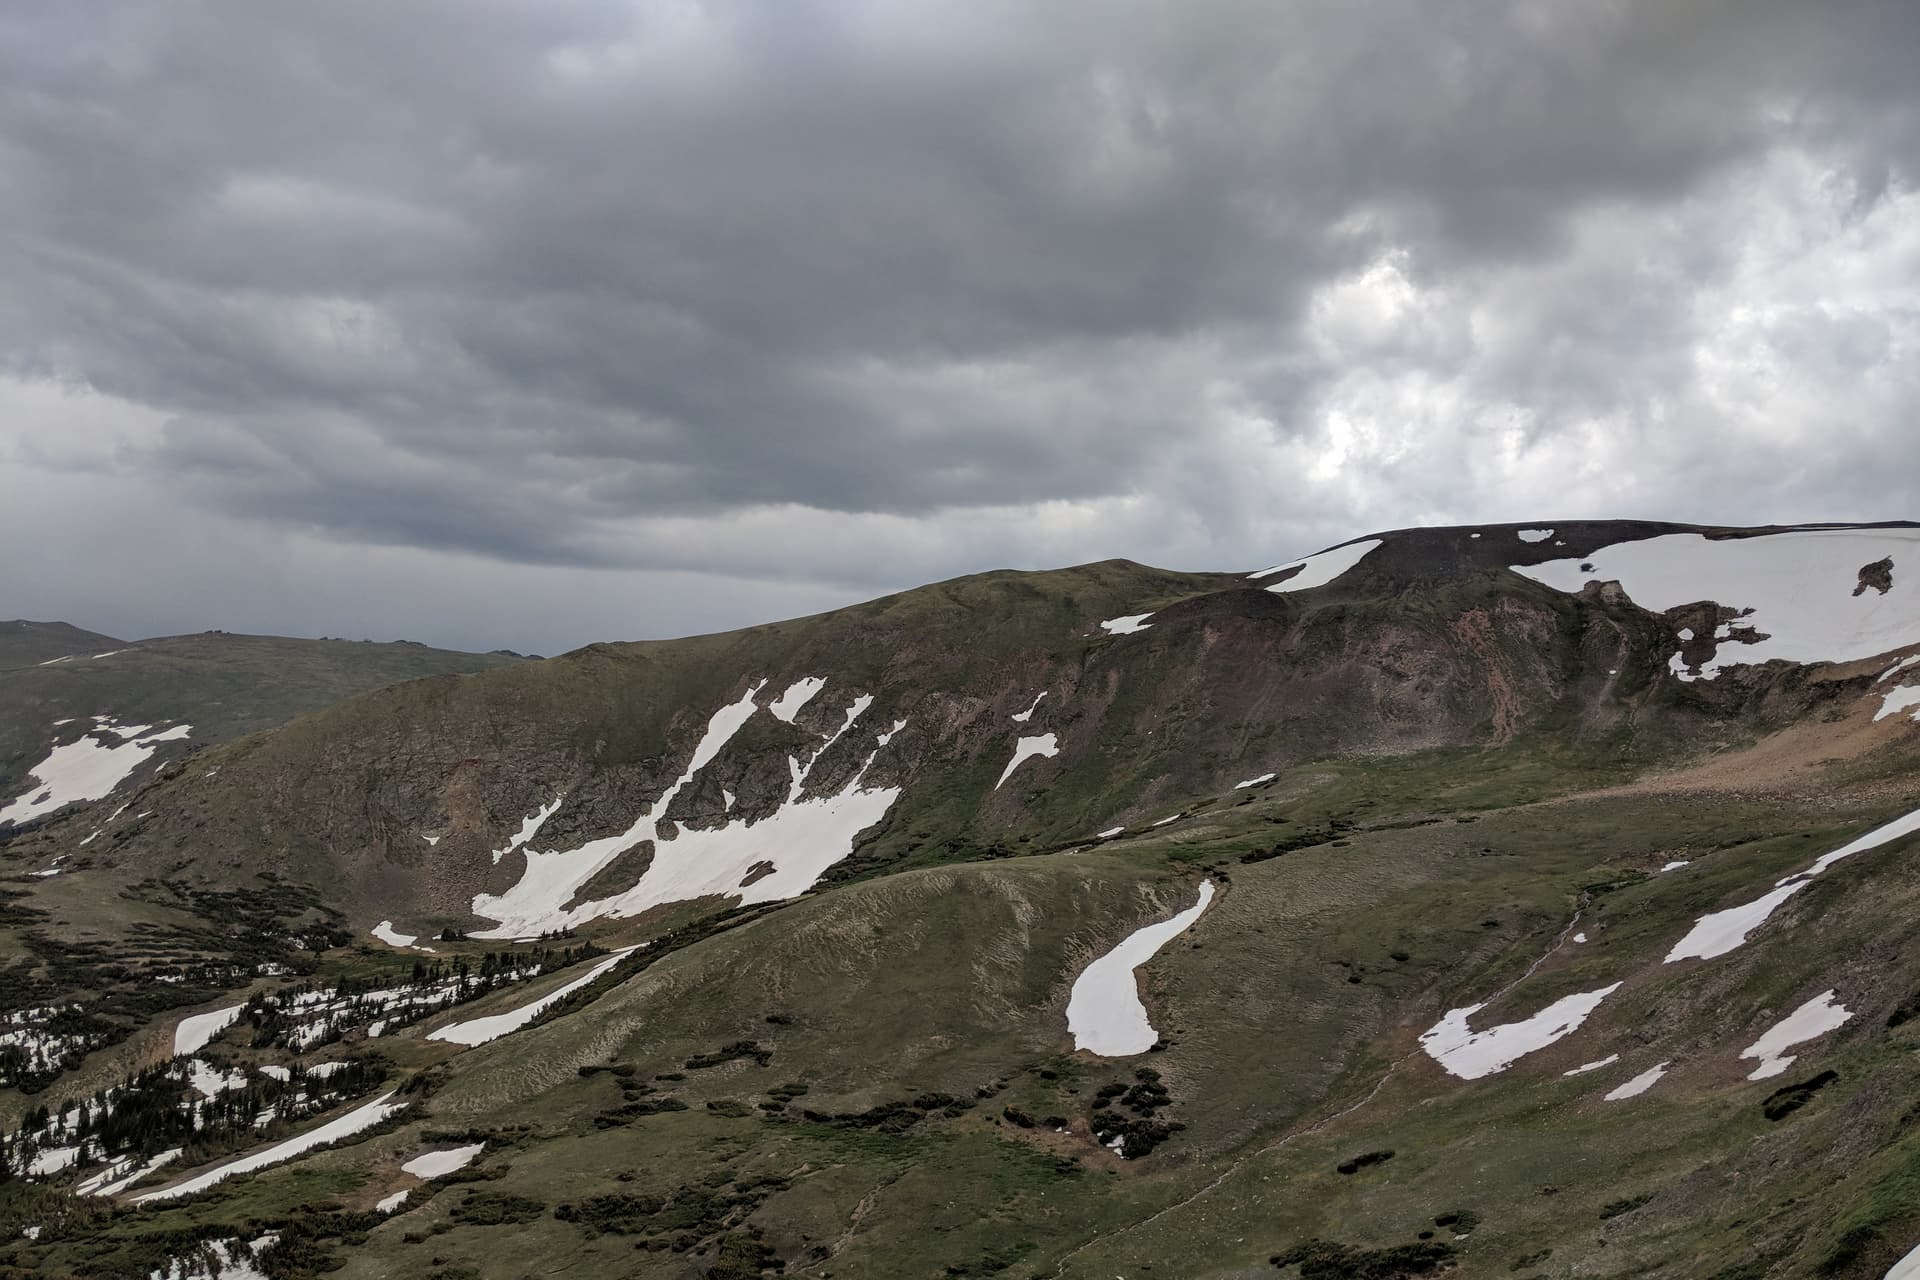 A green alpine peak, still partially covered in snow. Low, gray clouds hang overhead.